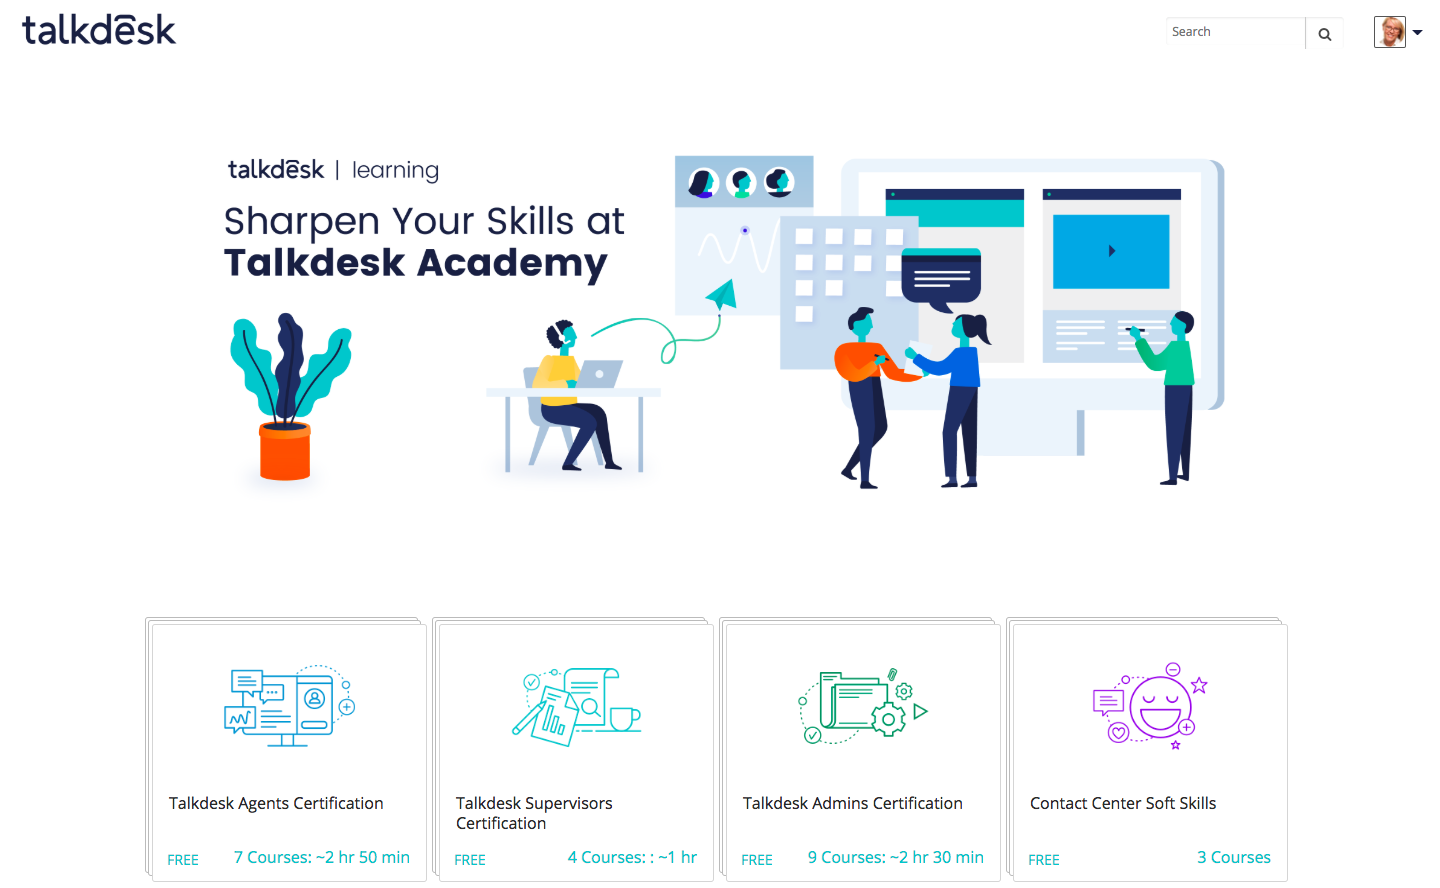 New_Talkdesk_Learning_Academy.png